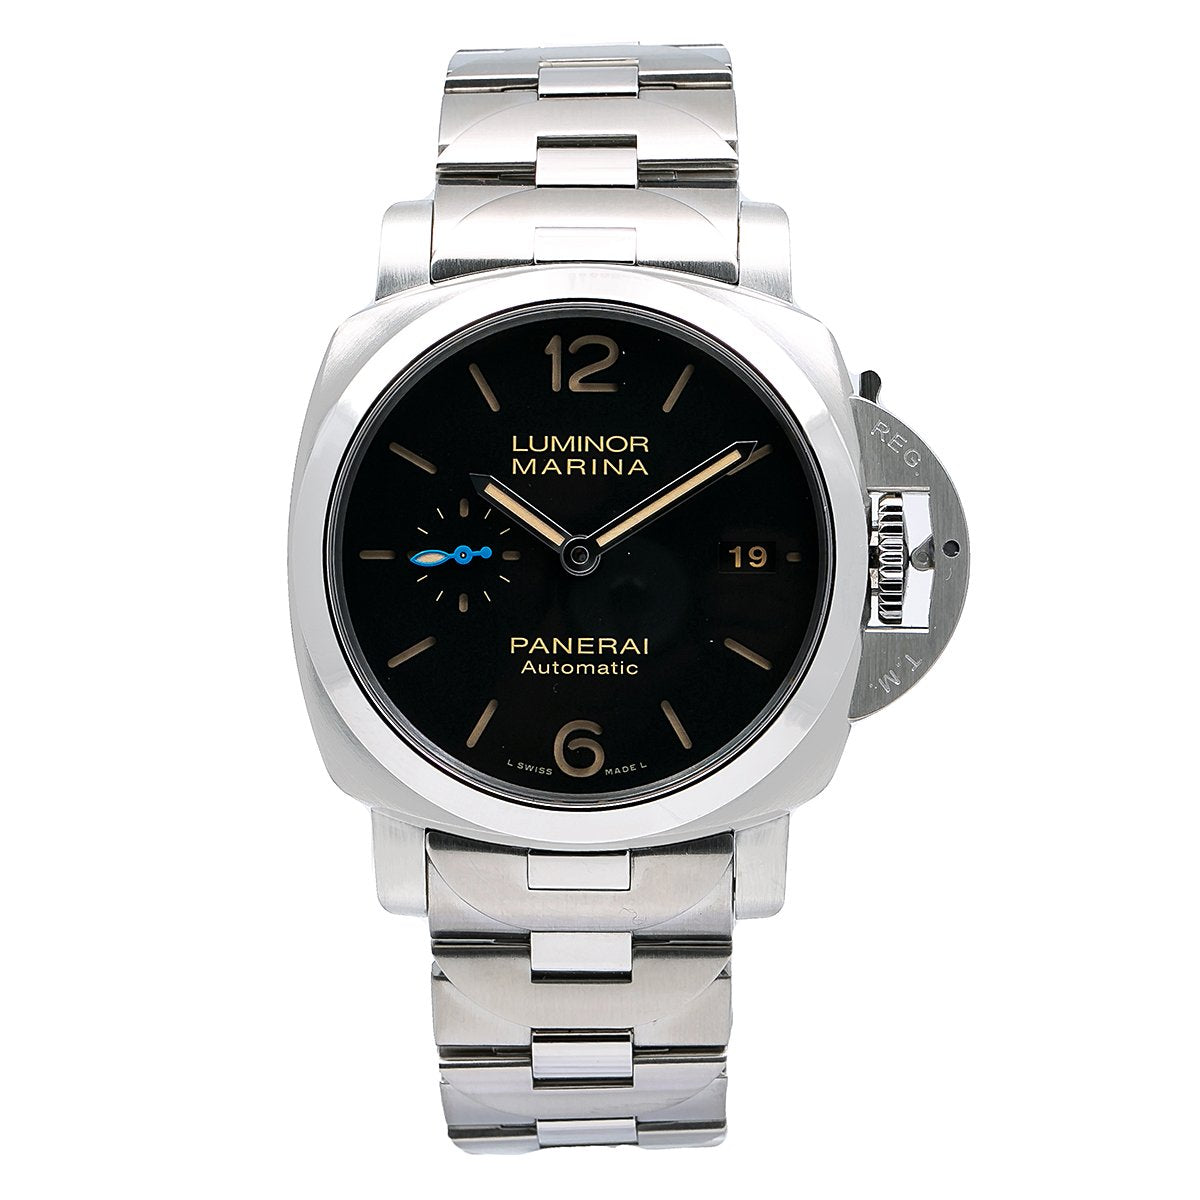 Panerai Luminor Marina 1950 Automatic PAM00722 42MM Black Dial With Stainless Steel Bracelet